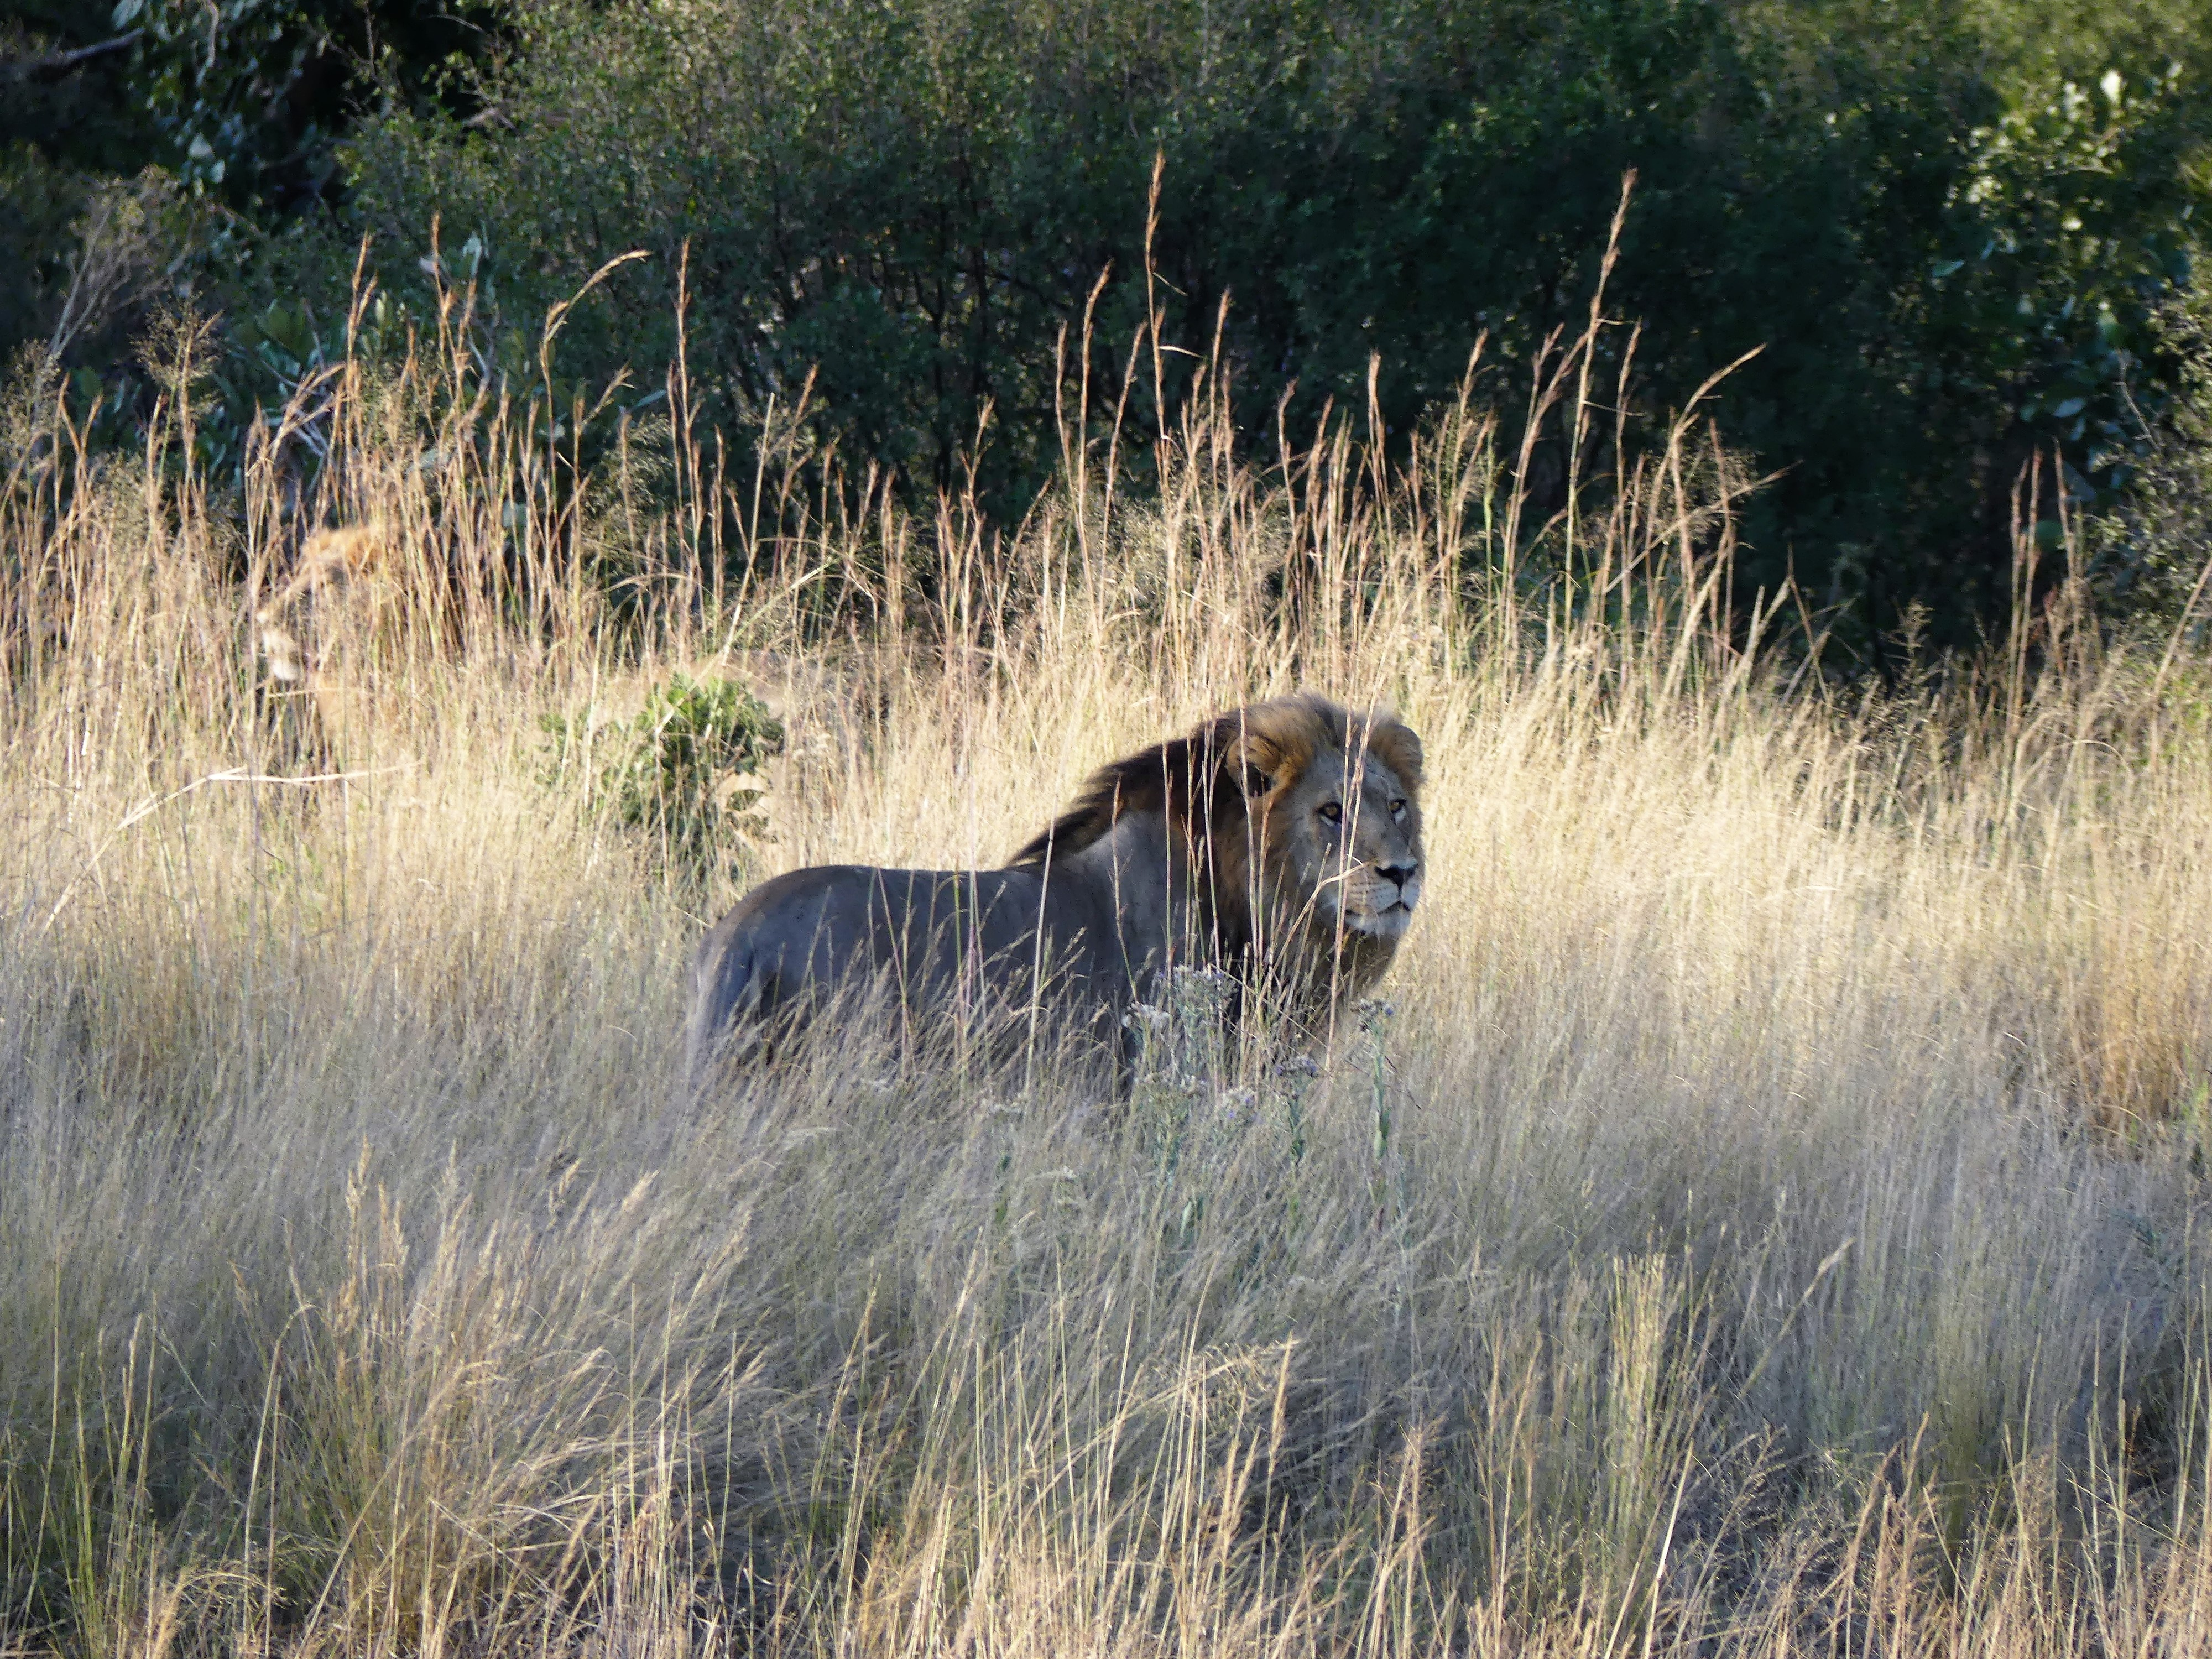 lion 2 in the grass